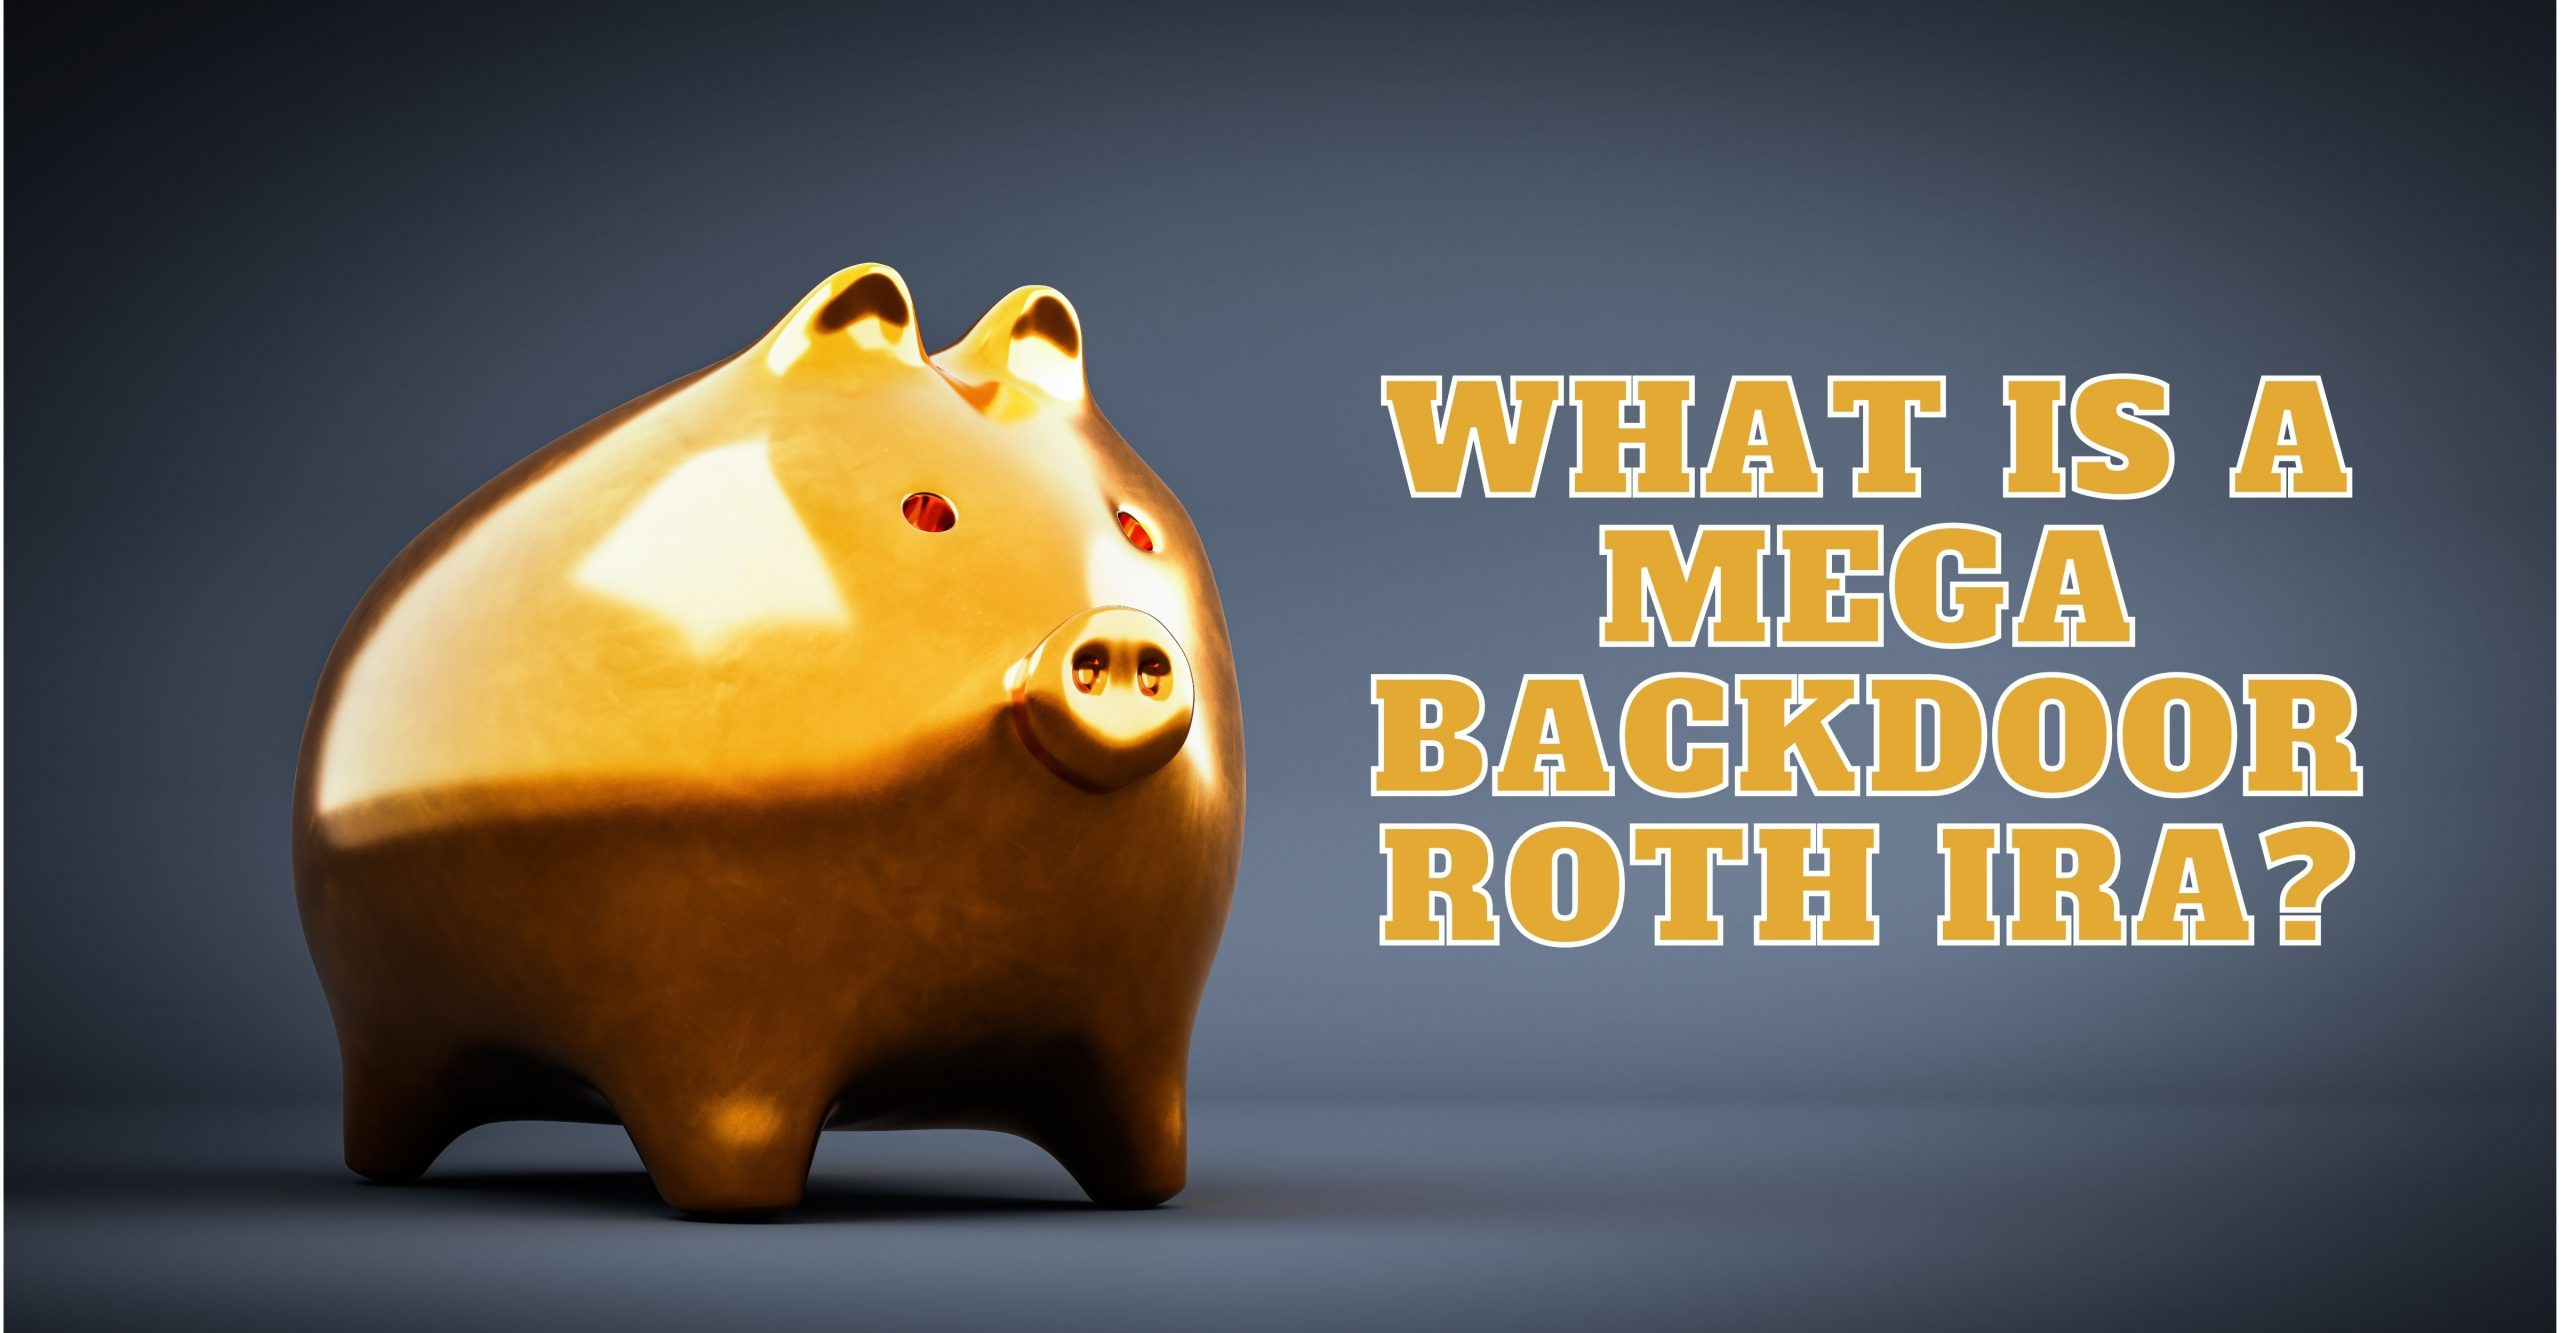 What is a mega backdoor roth ira hero image